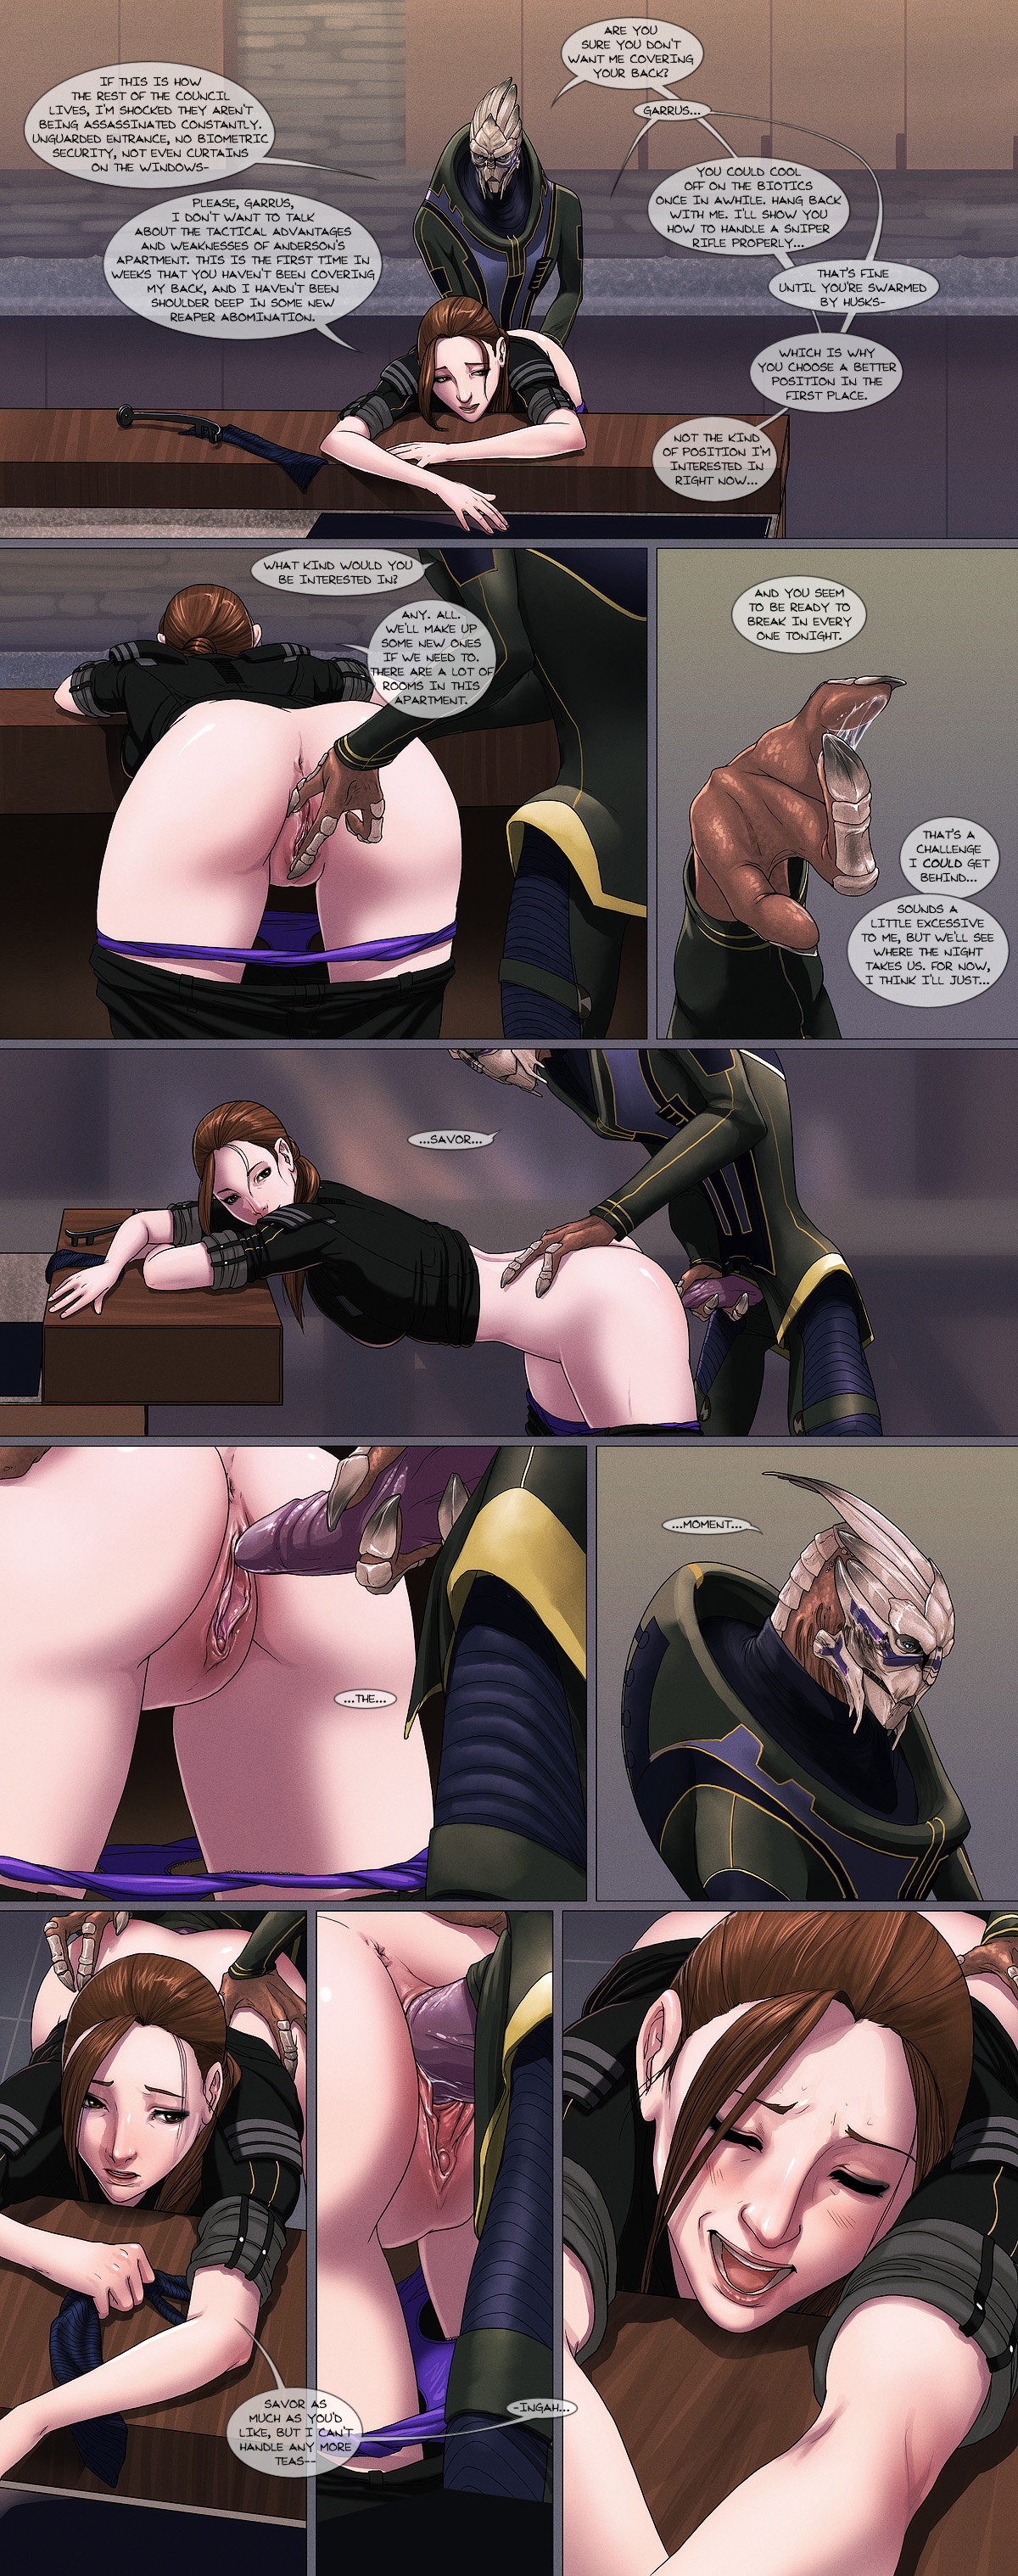 Mass effect porn jane xxx video